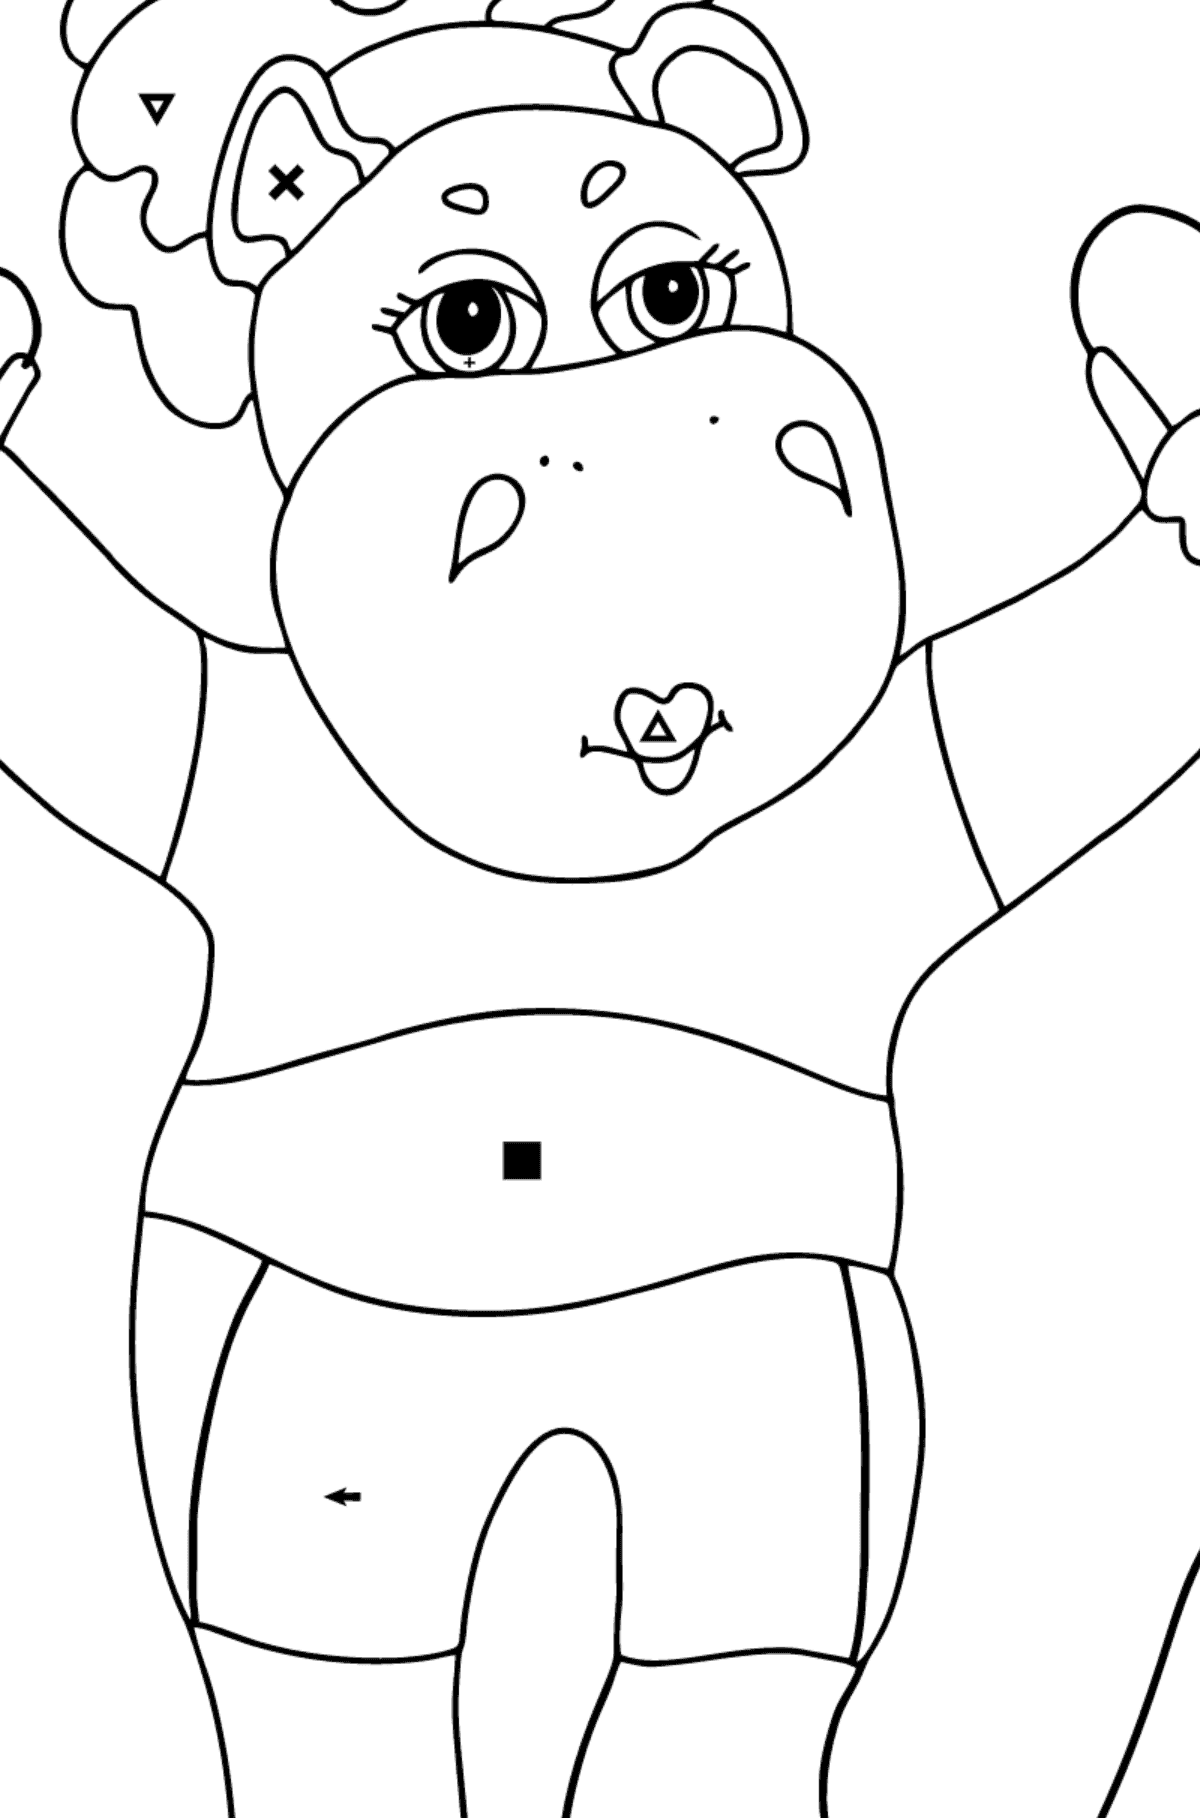 Coloring Page - A Hippo with a Jump Rope for Children  - Color by Special Symbols